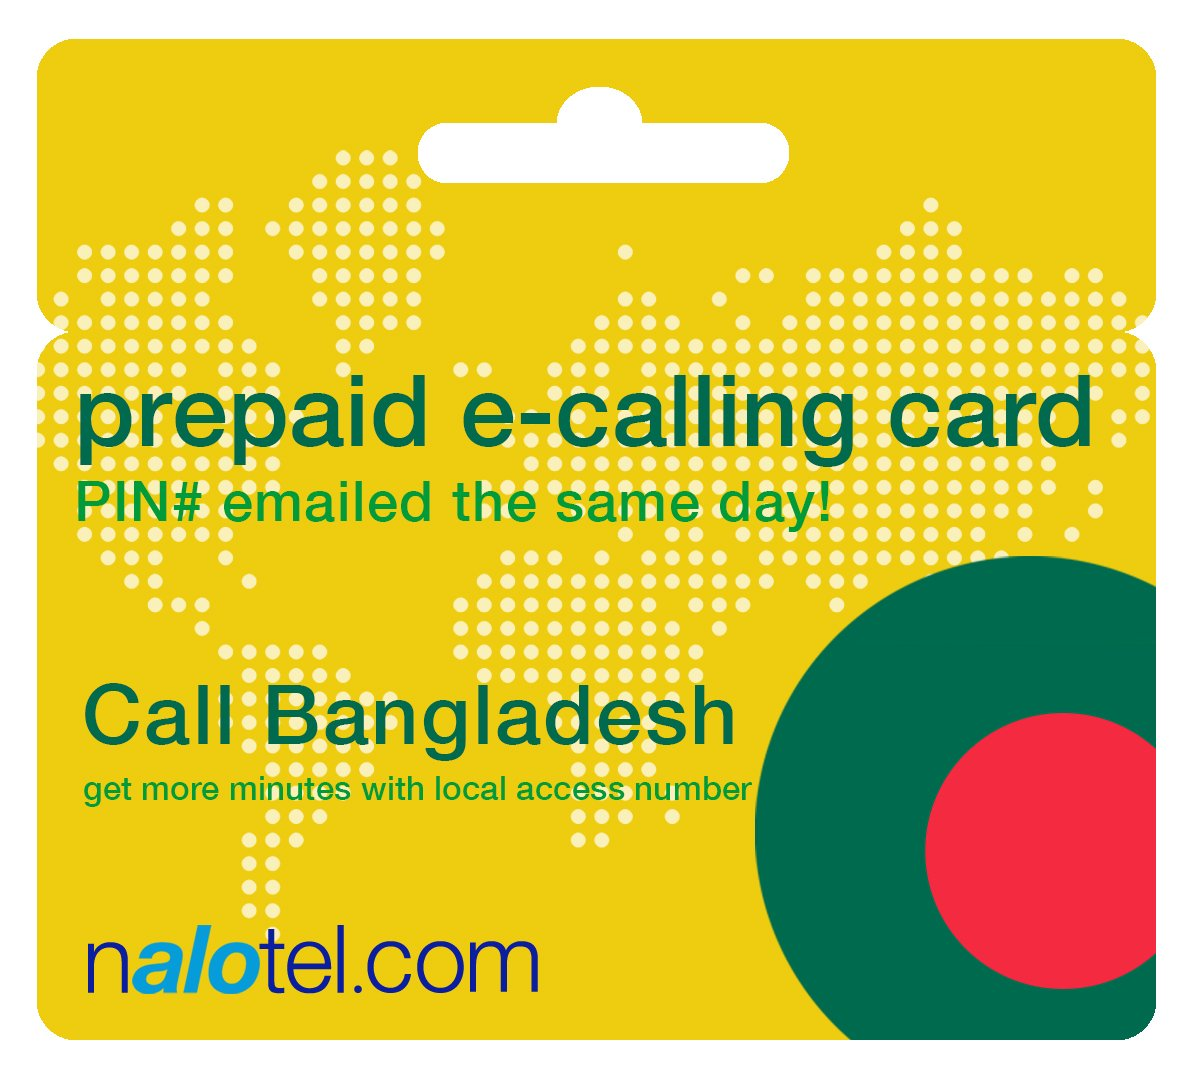 Prepaid Phone Card - Cheap International E-Calling Card $10 for Bangladesh with same day emailed PIN, no postage necessary